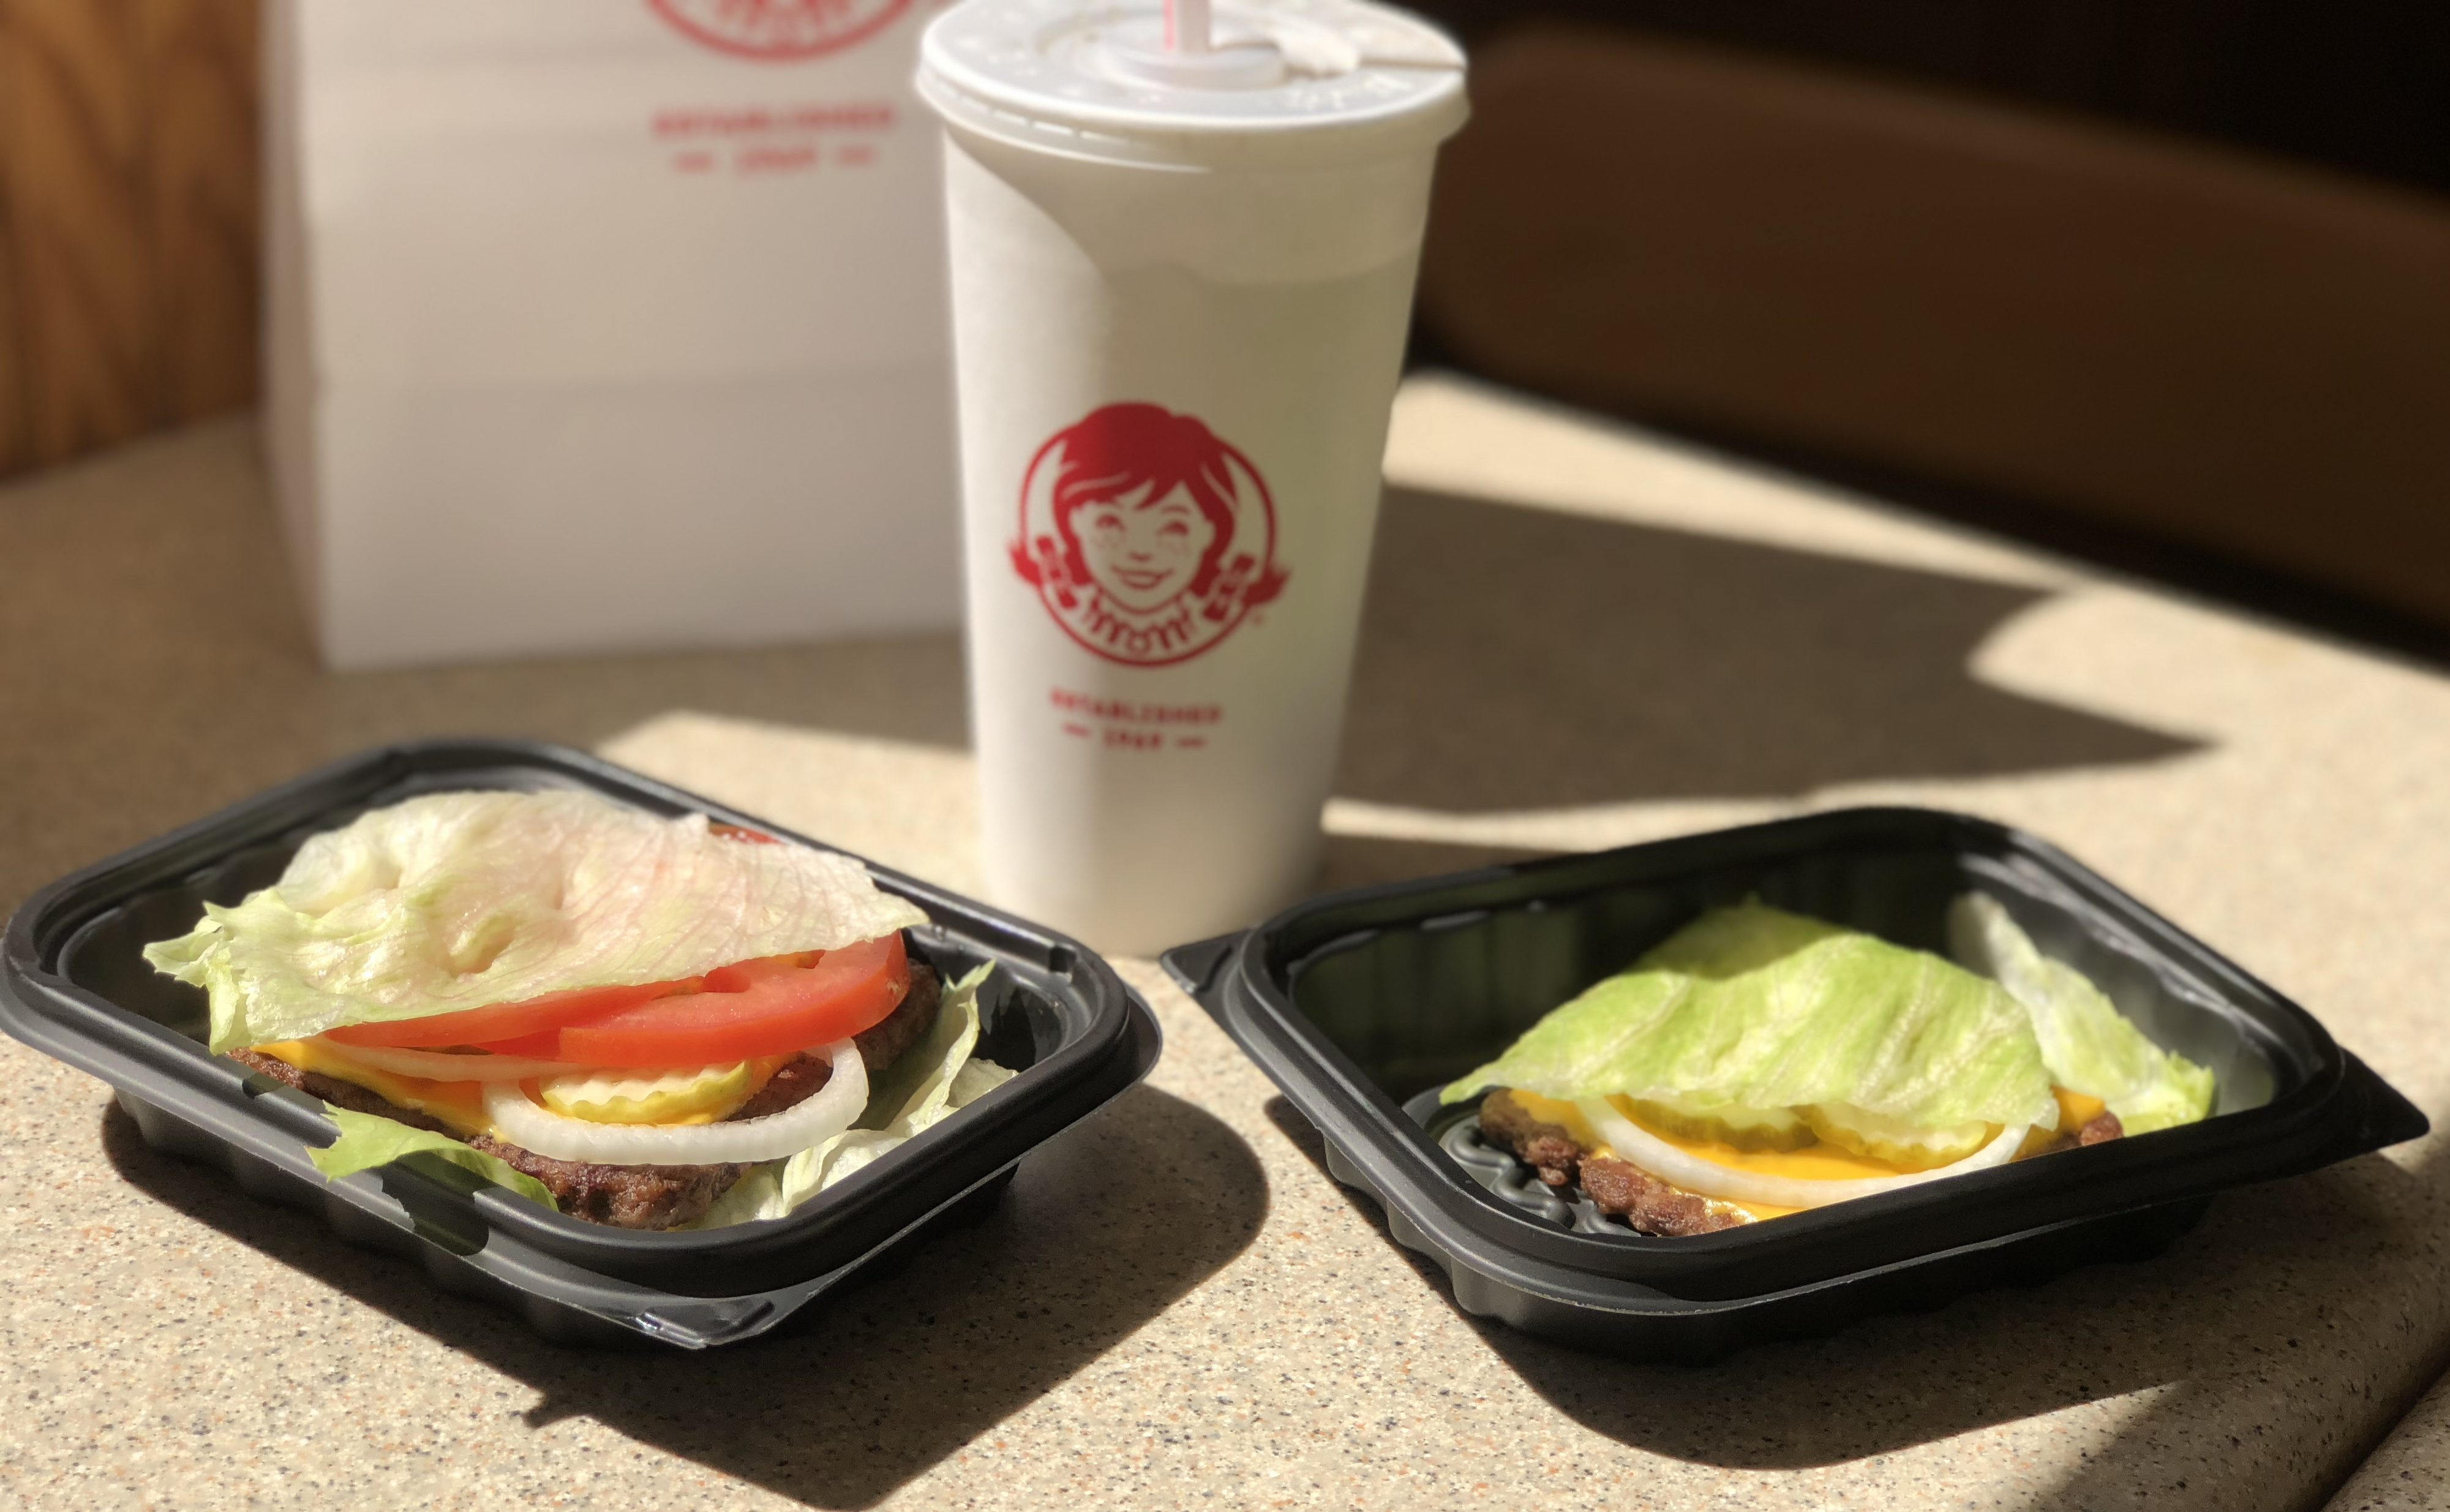 Wendy's Keto burgers like the ones in September you can get with this deal